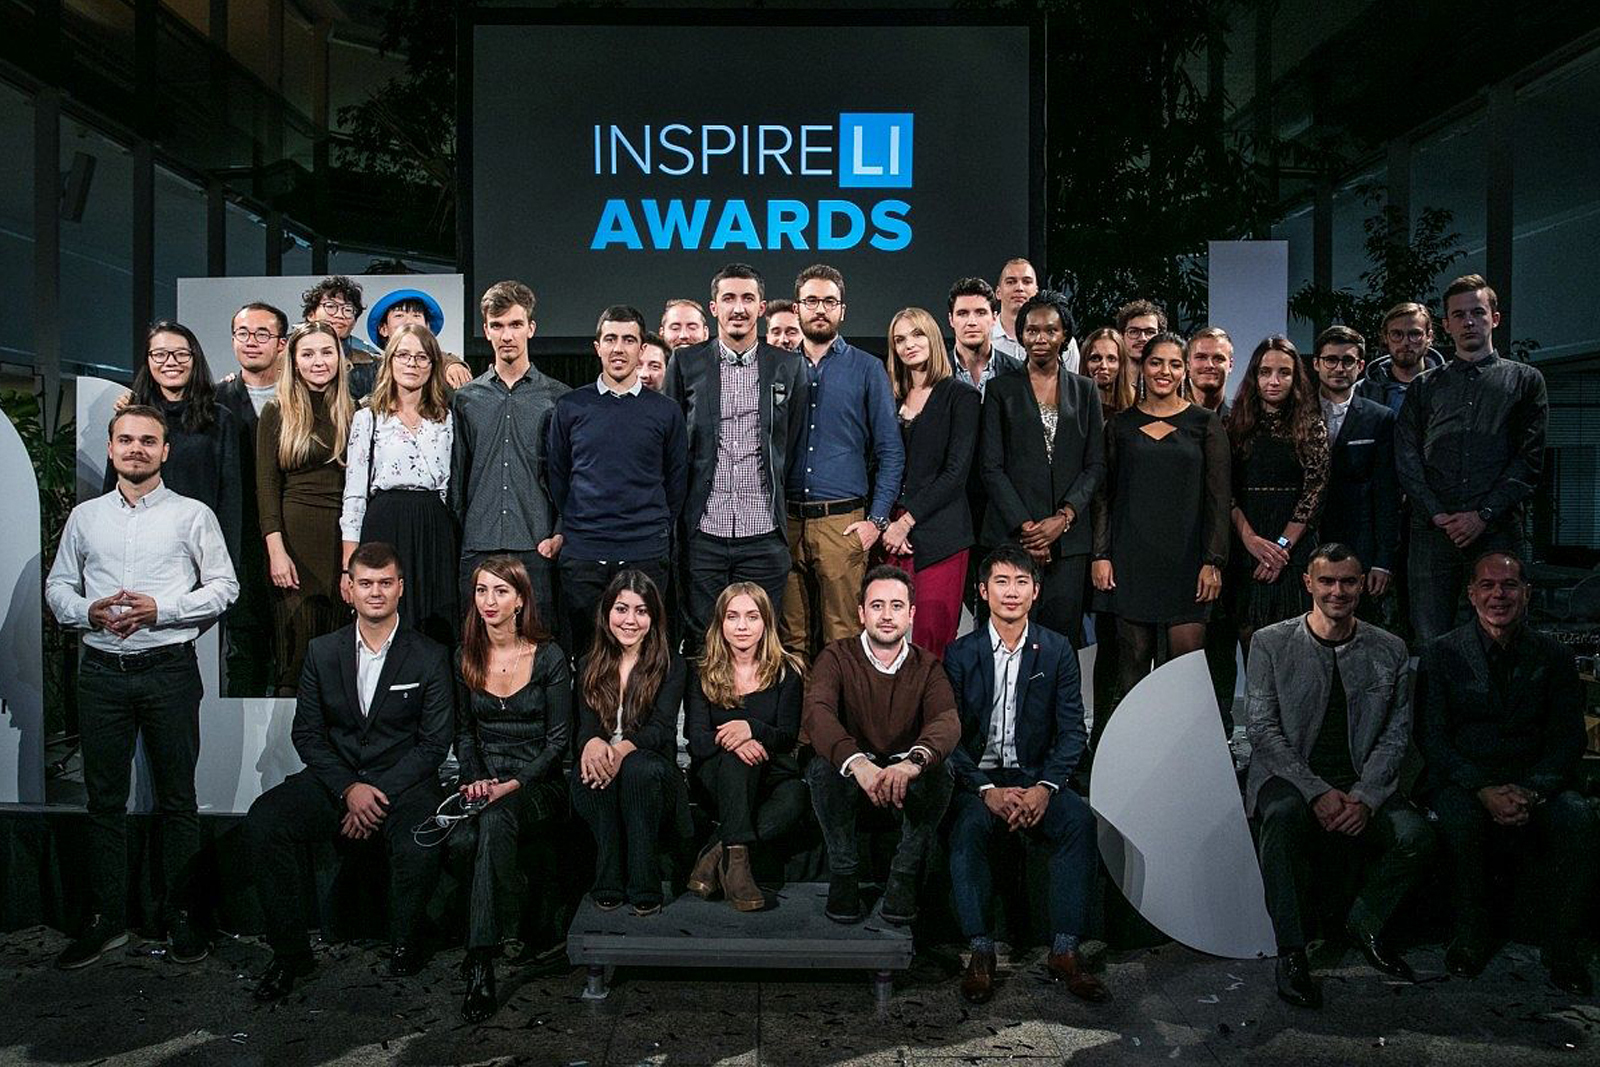 inspireli awards 2020. prague